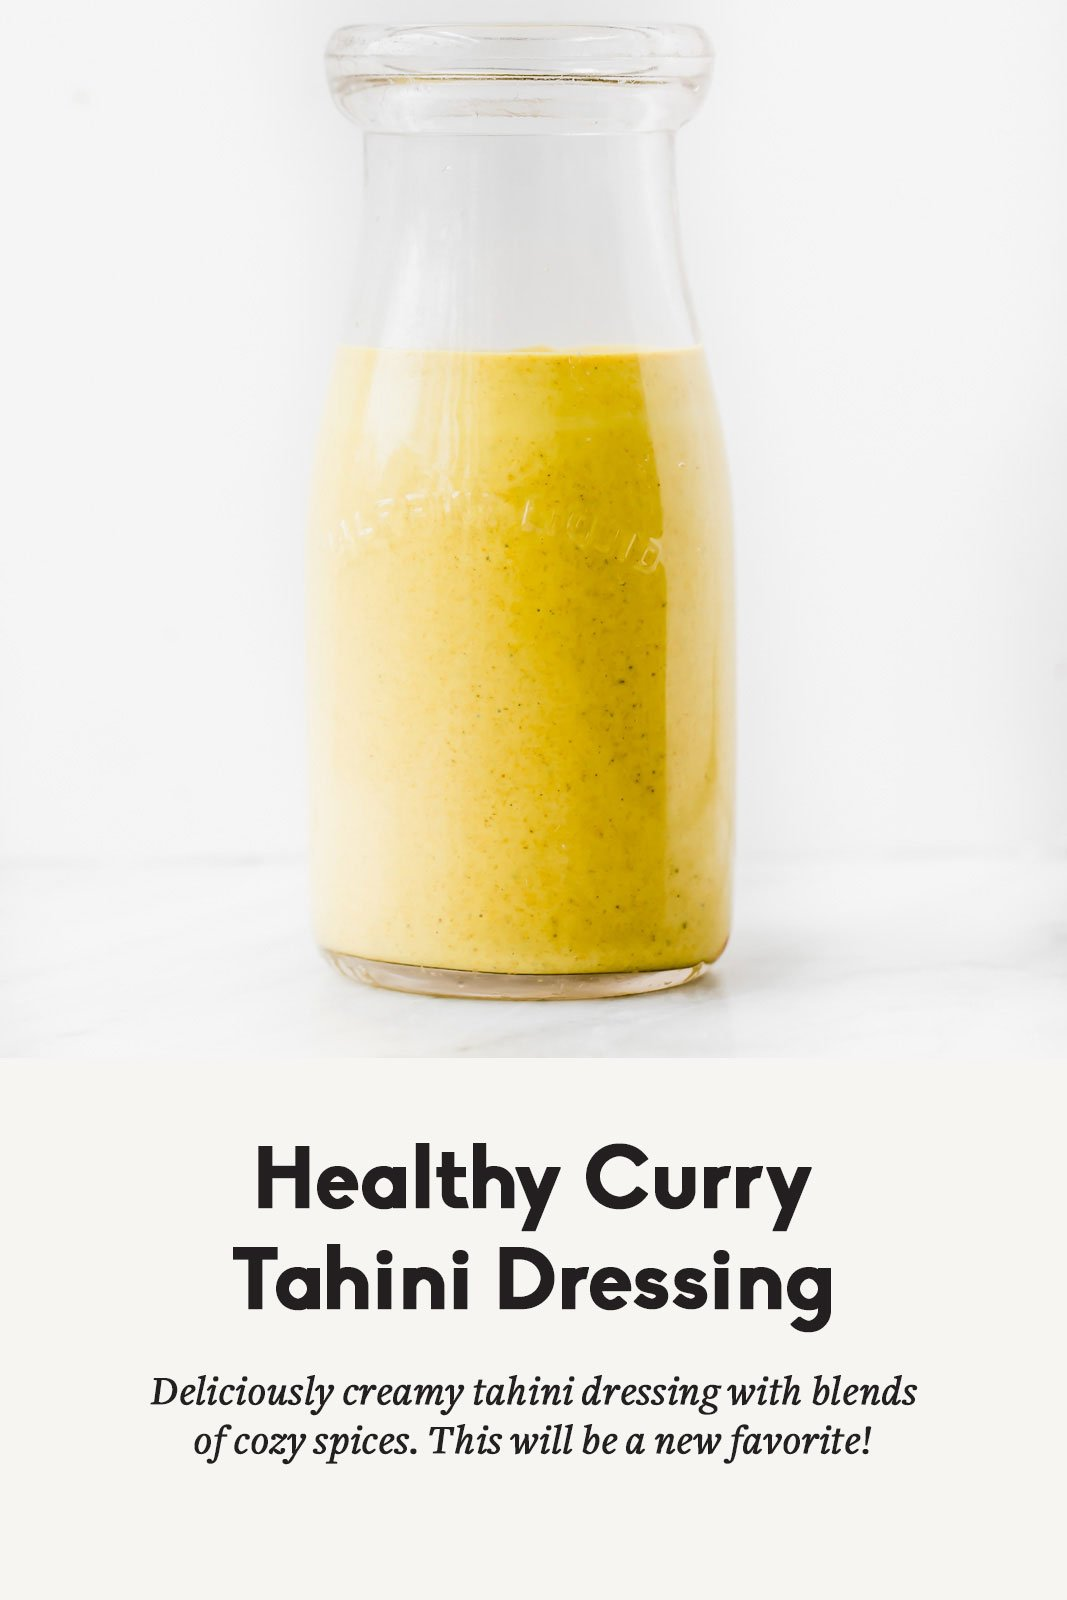 Healthy curry tahini dressing in a clear jar